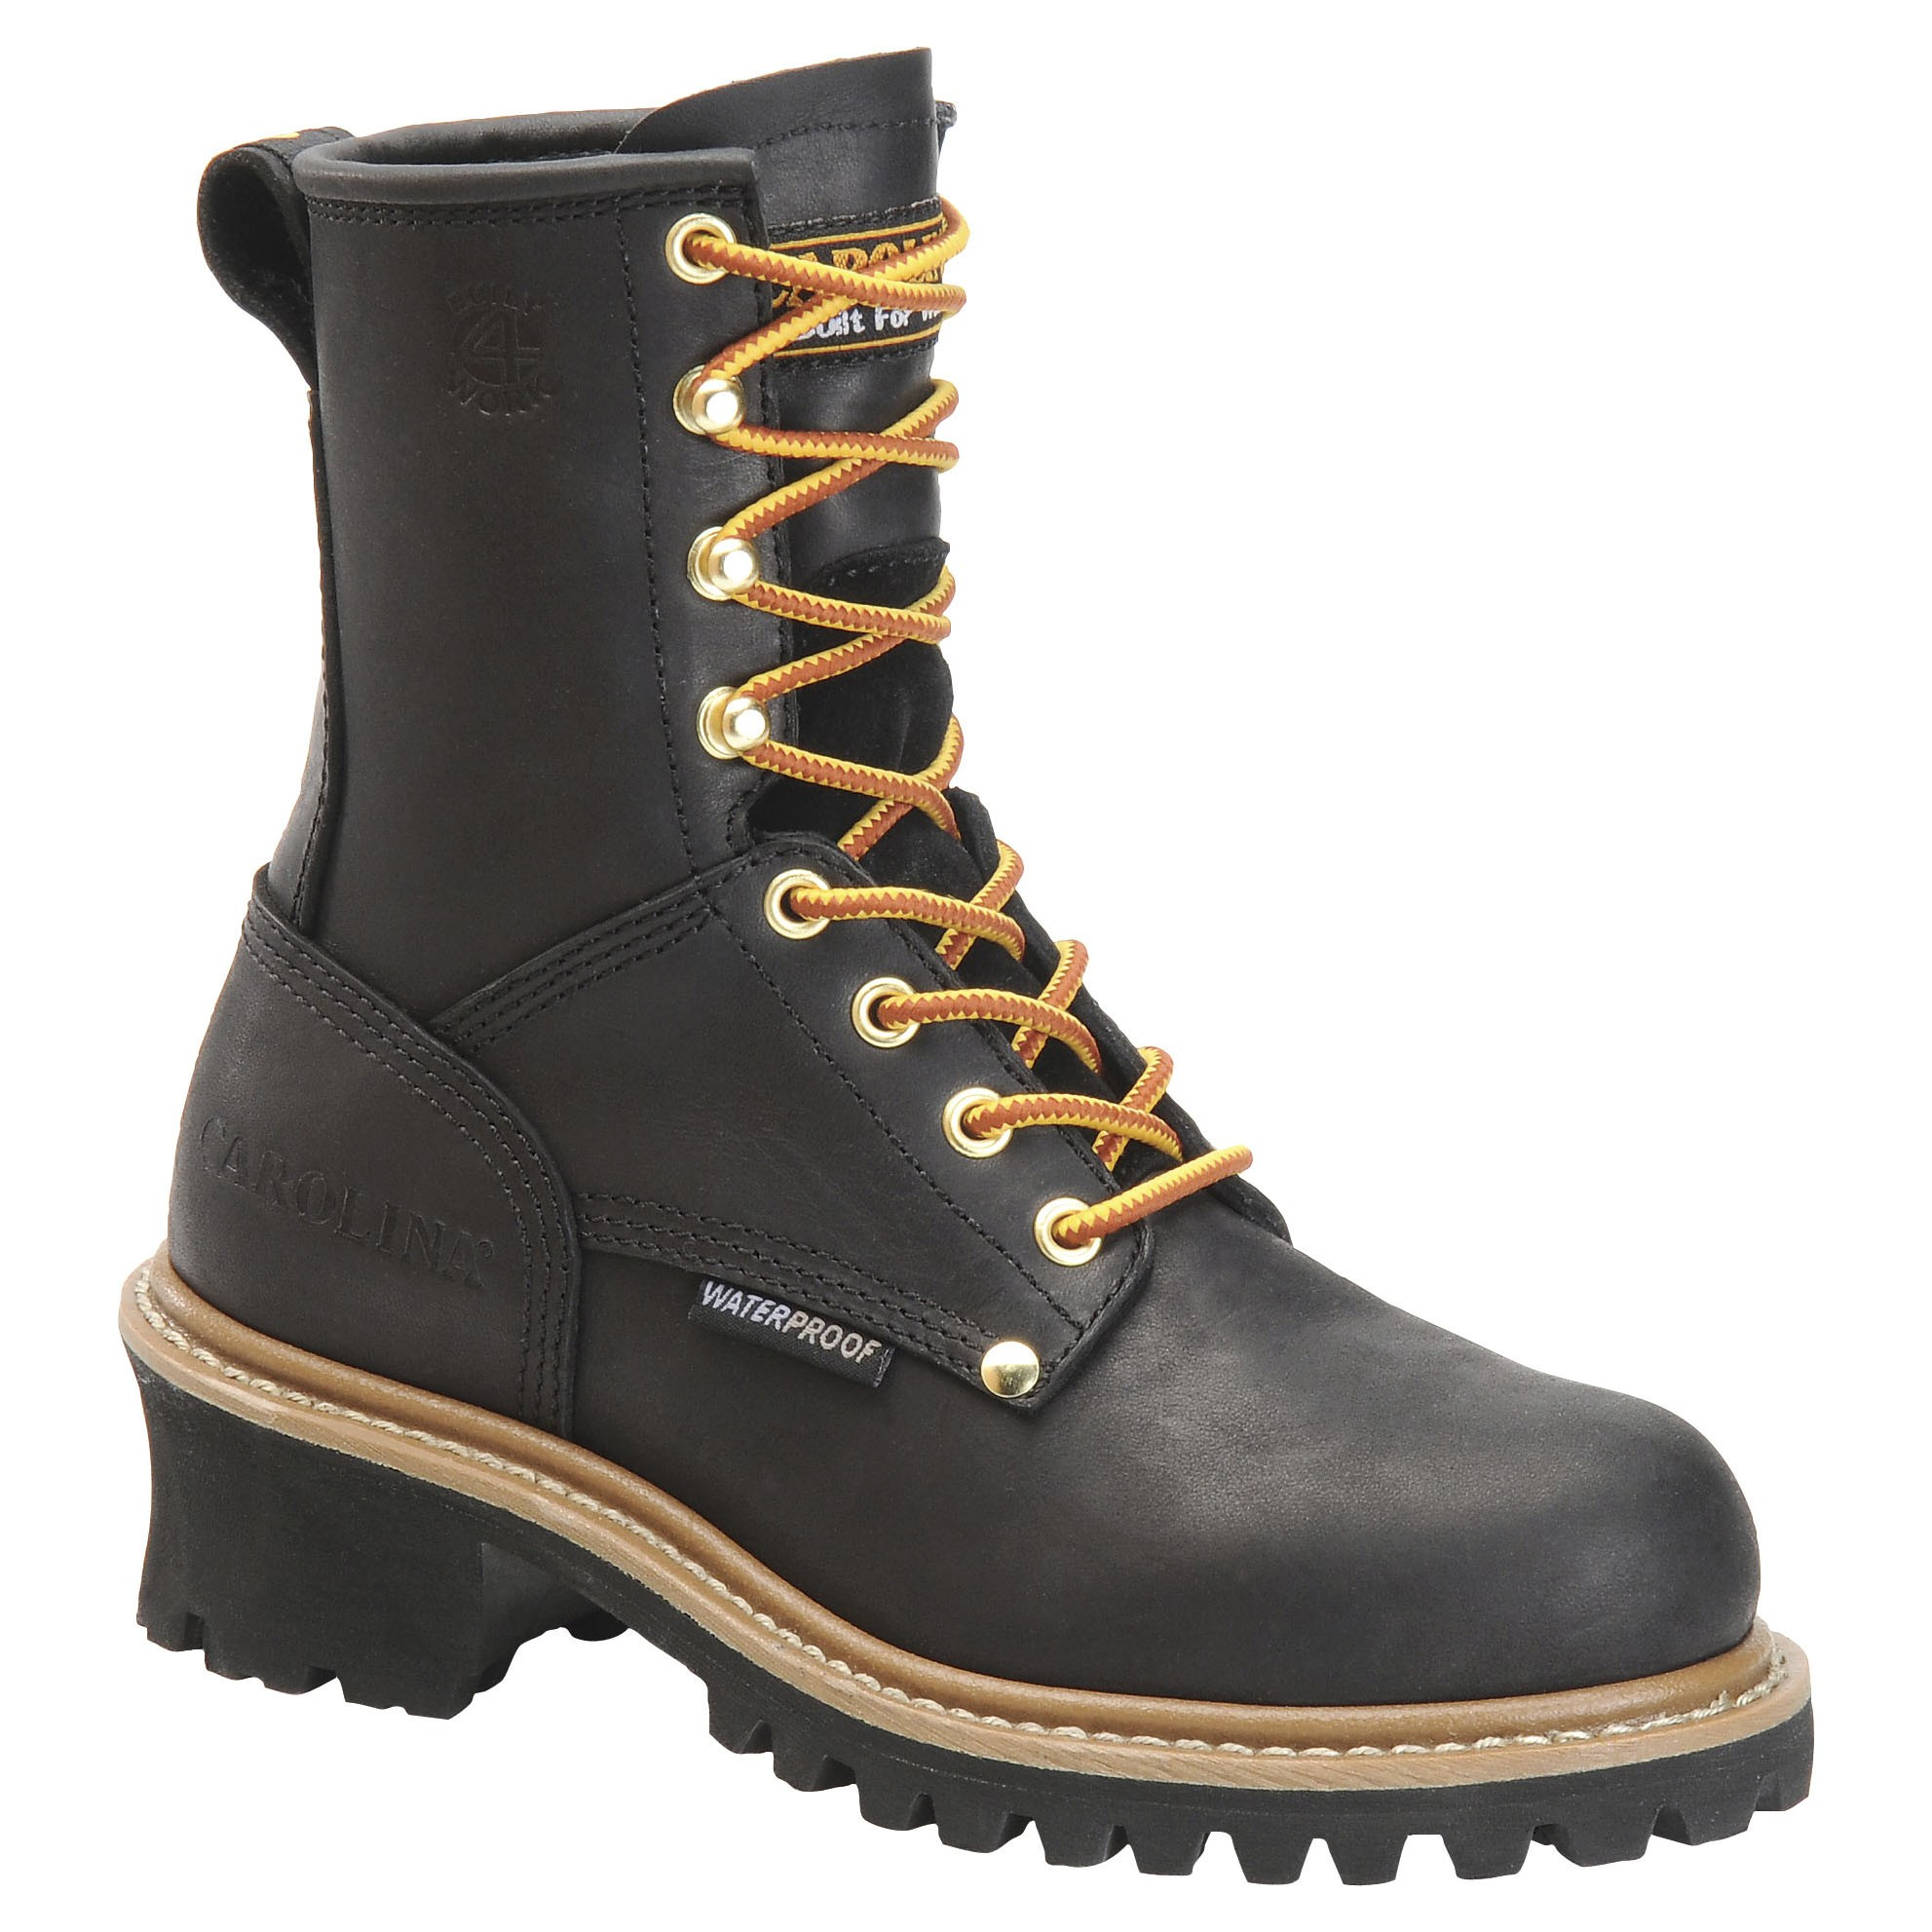 Boots For Womens aEzADyMJ